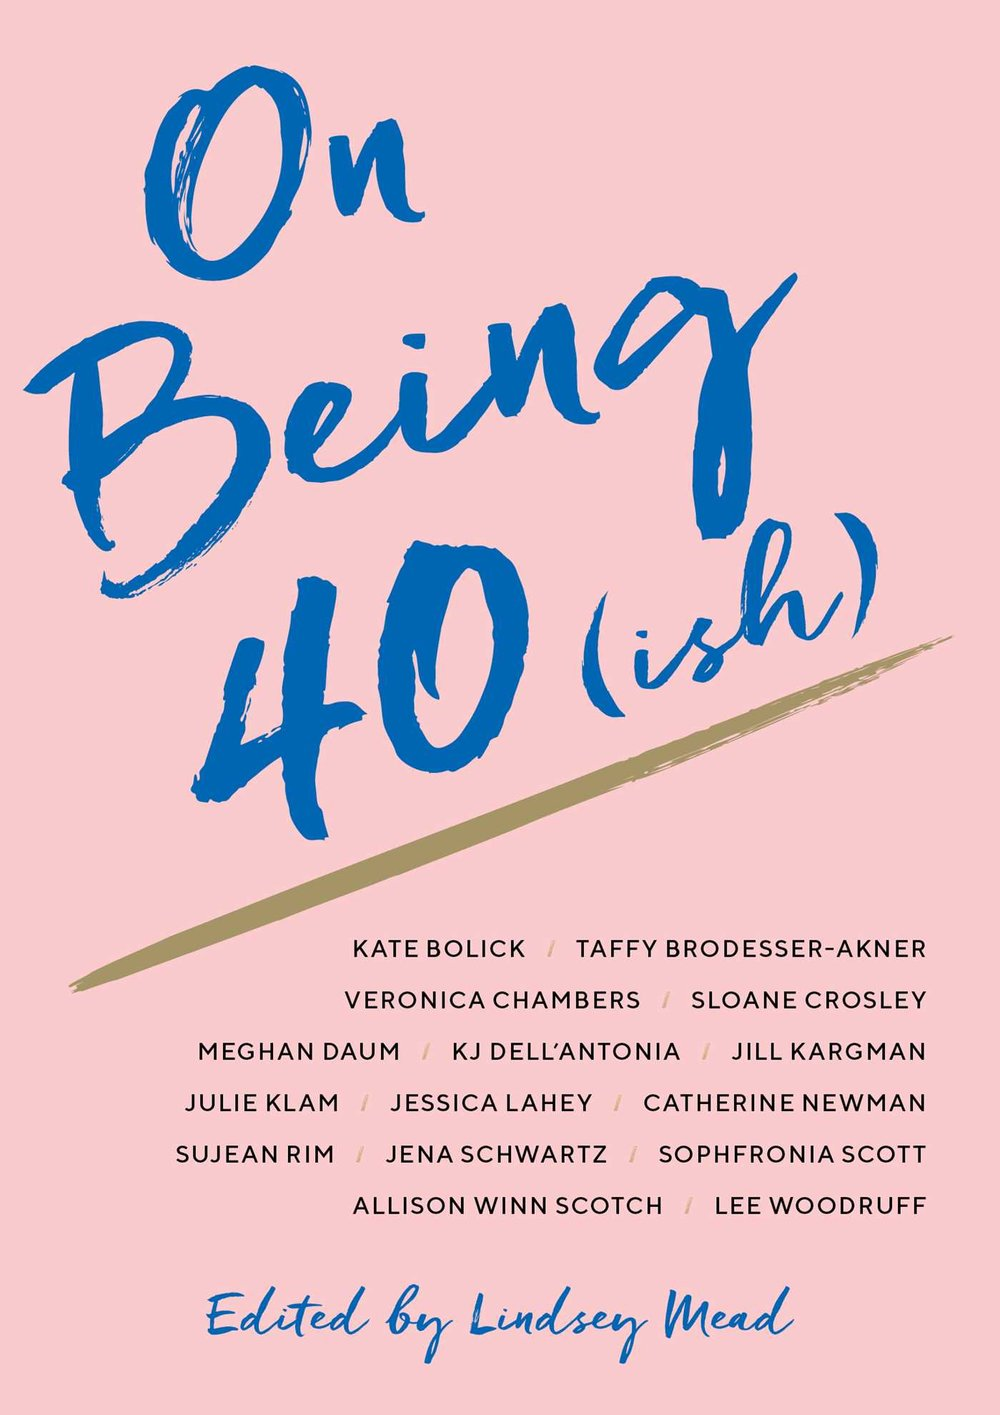 On Being 40(ish)  edited by Lindsey Mead  Simon & Schuster —- February 5, 2019